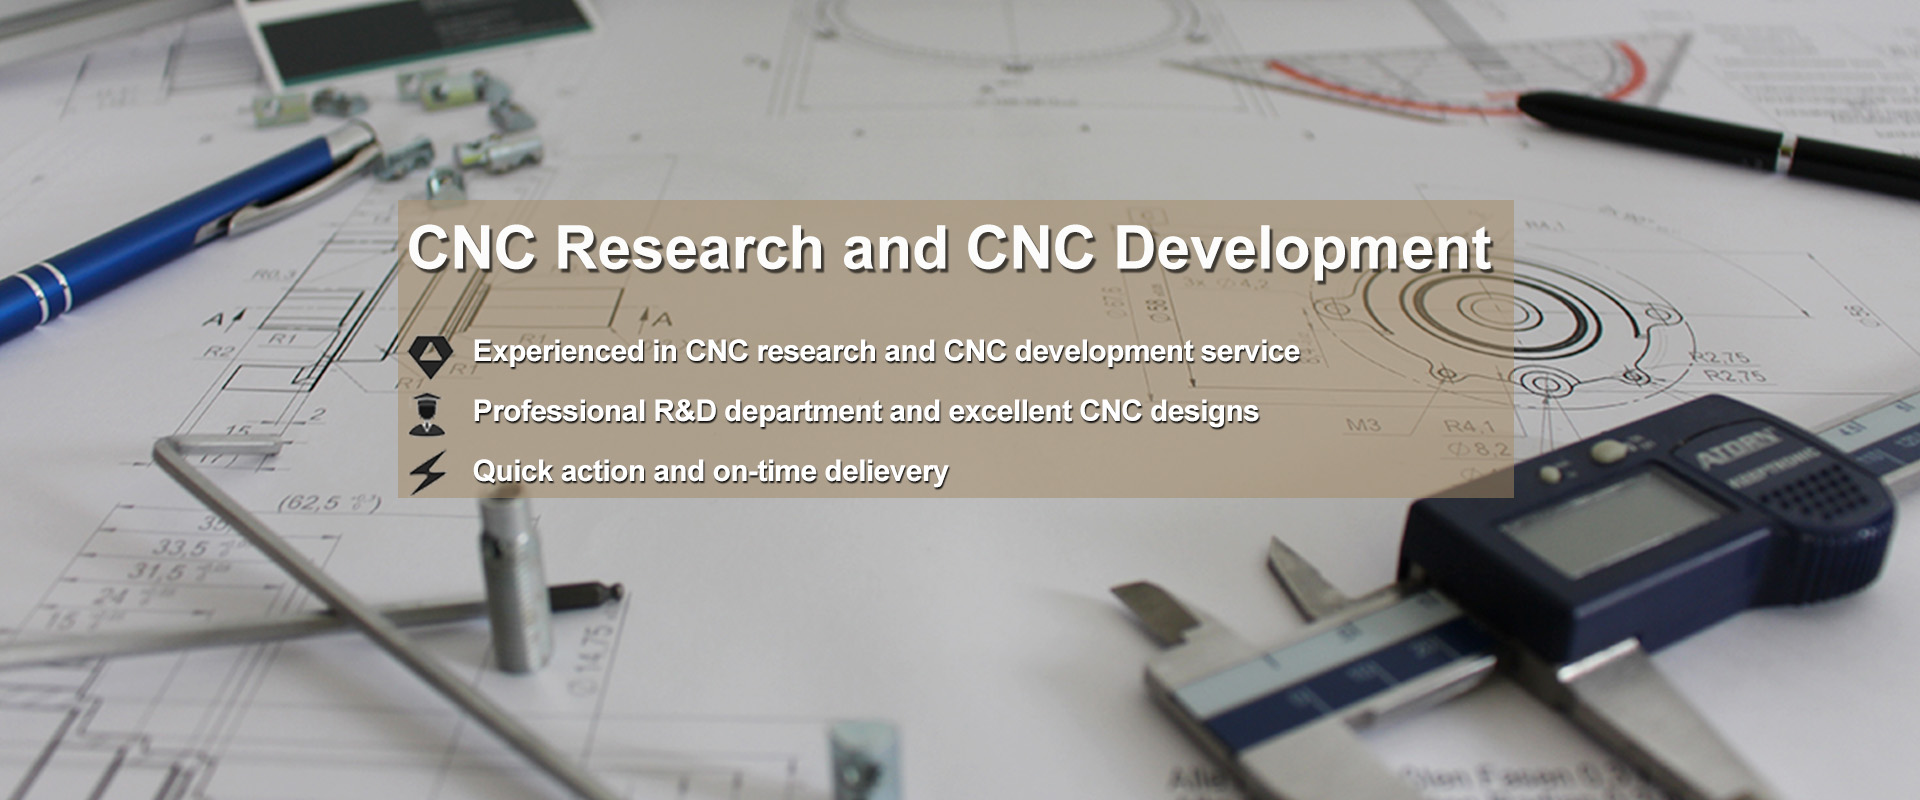 CNC Research and CNC Development